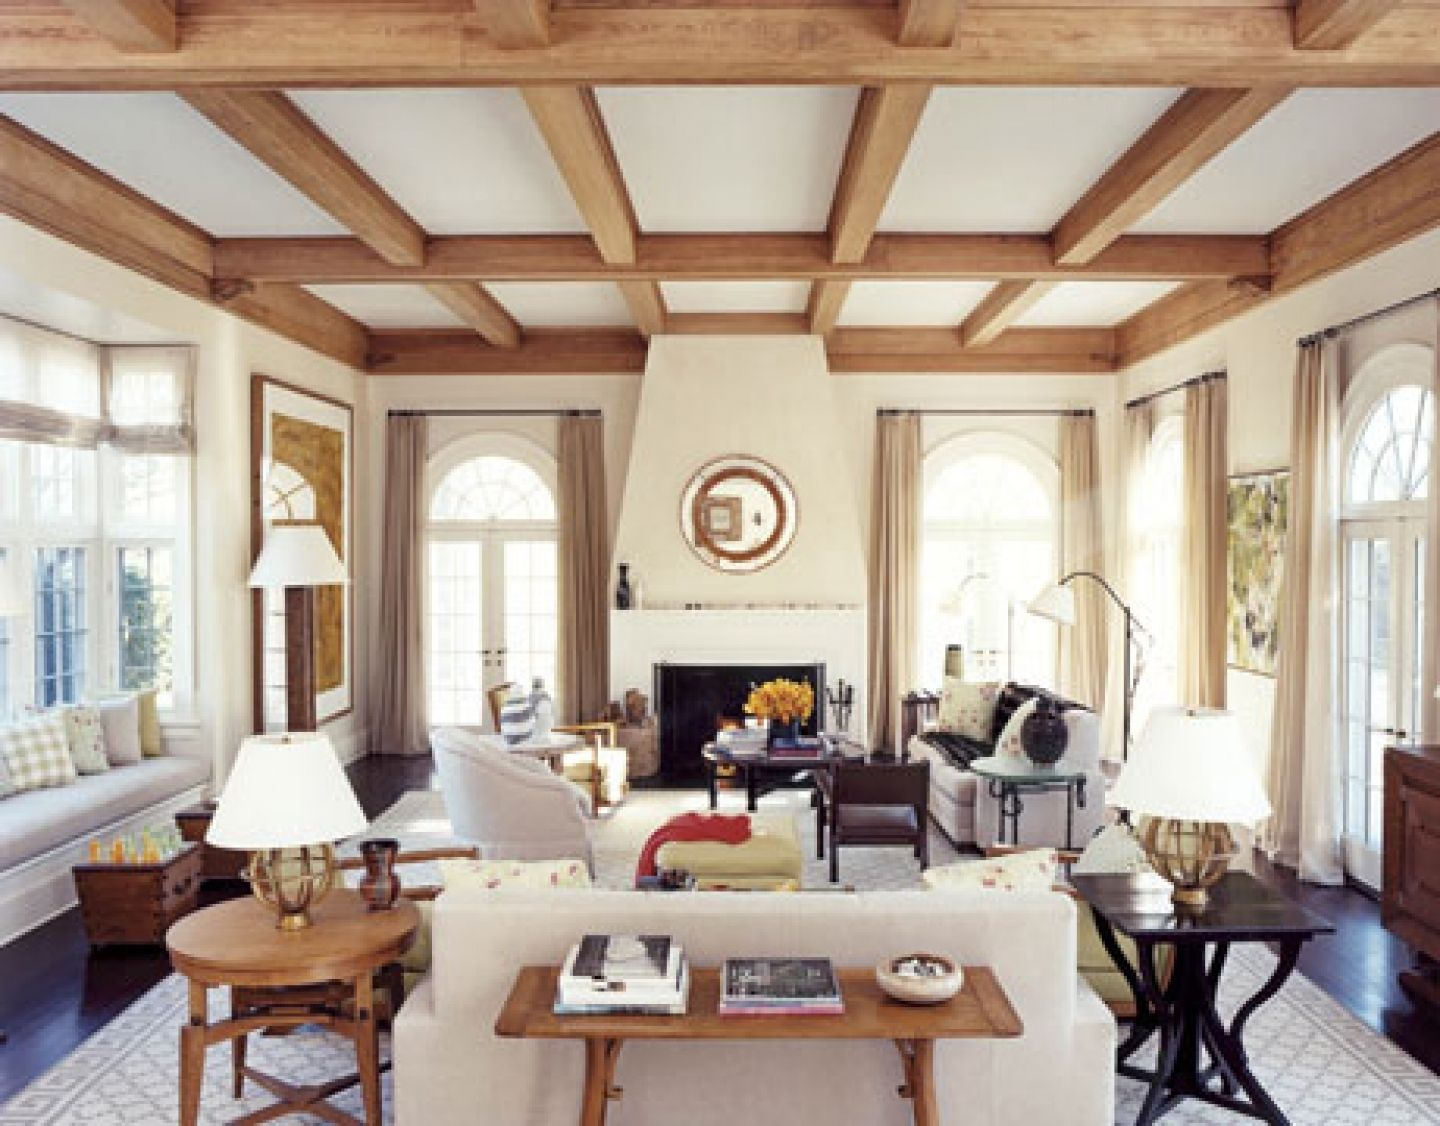 10 Stylish Covered Ceiling Ideas To Make It Smooth Beams